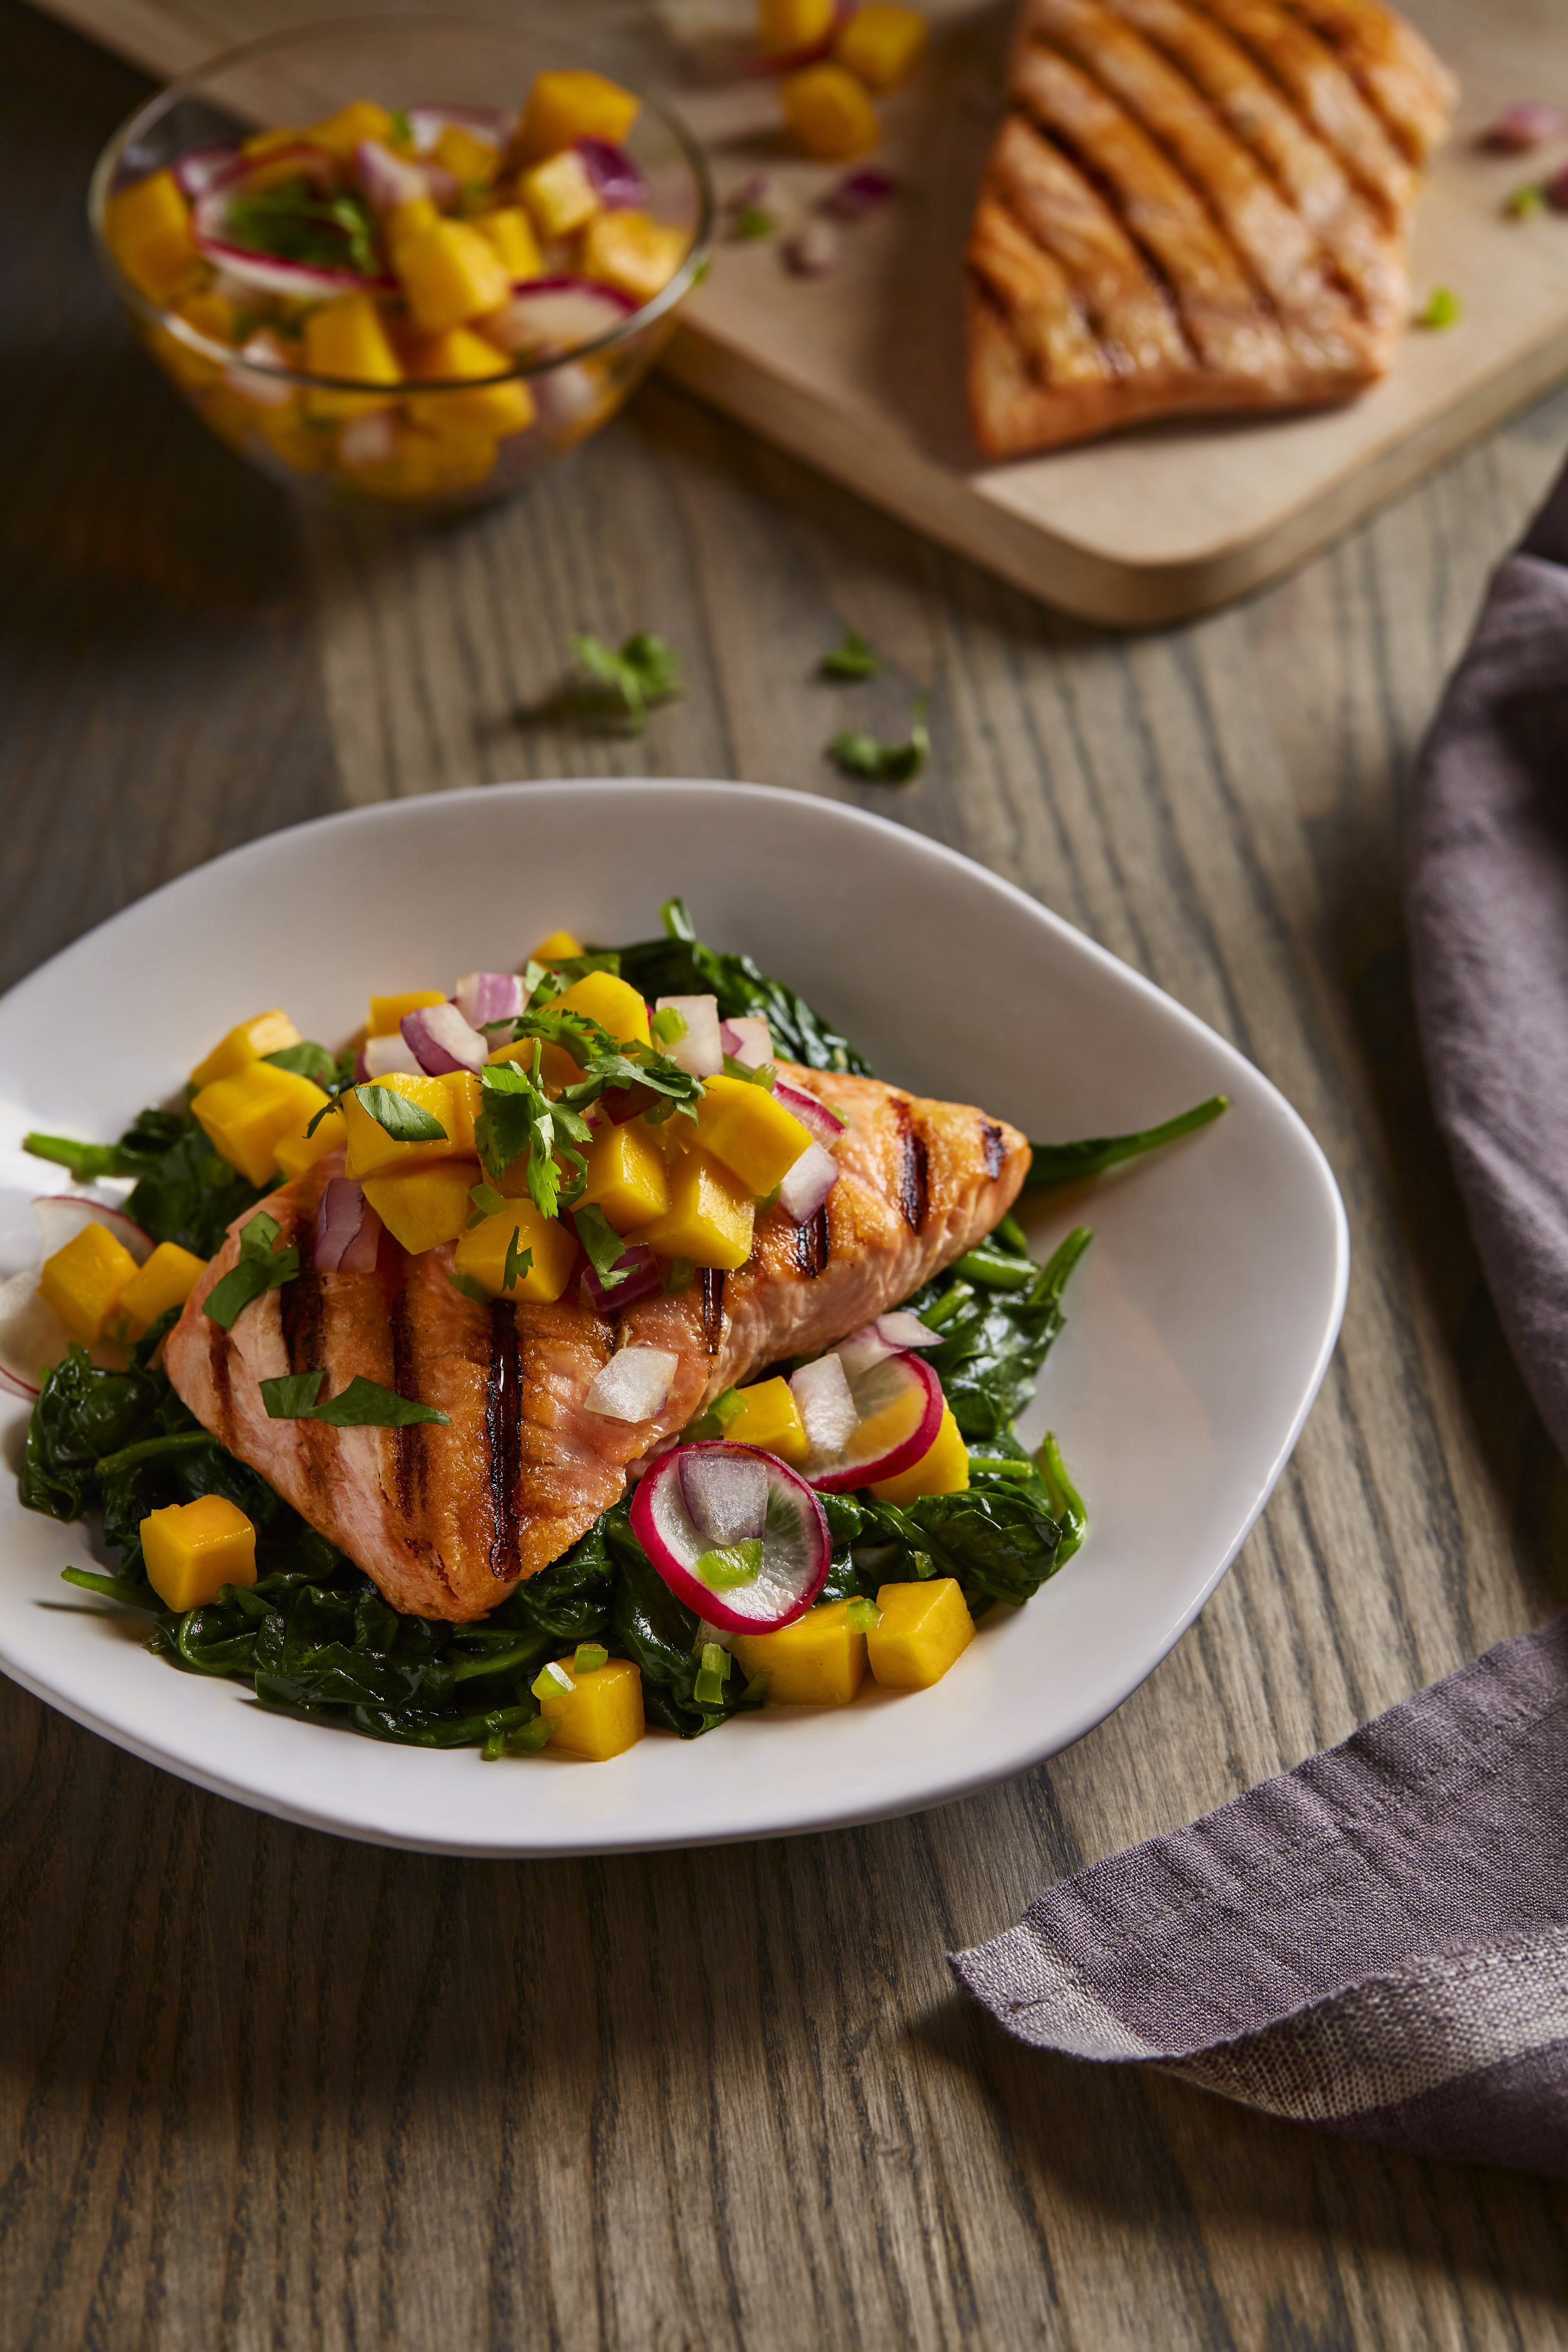 Copy of 04_GRILLED_SALMON_159_081017_R1.jpg